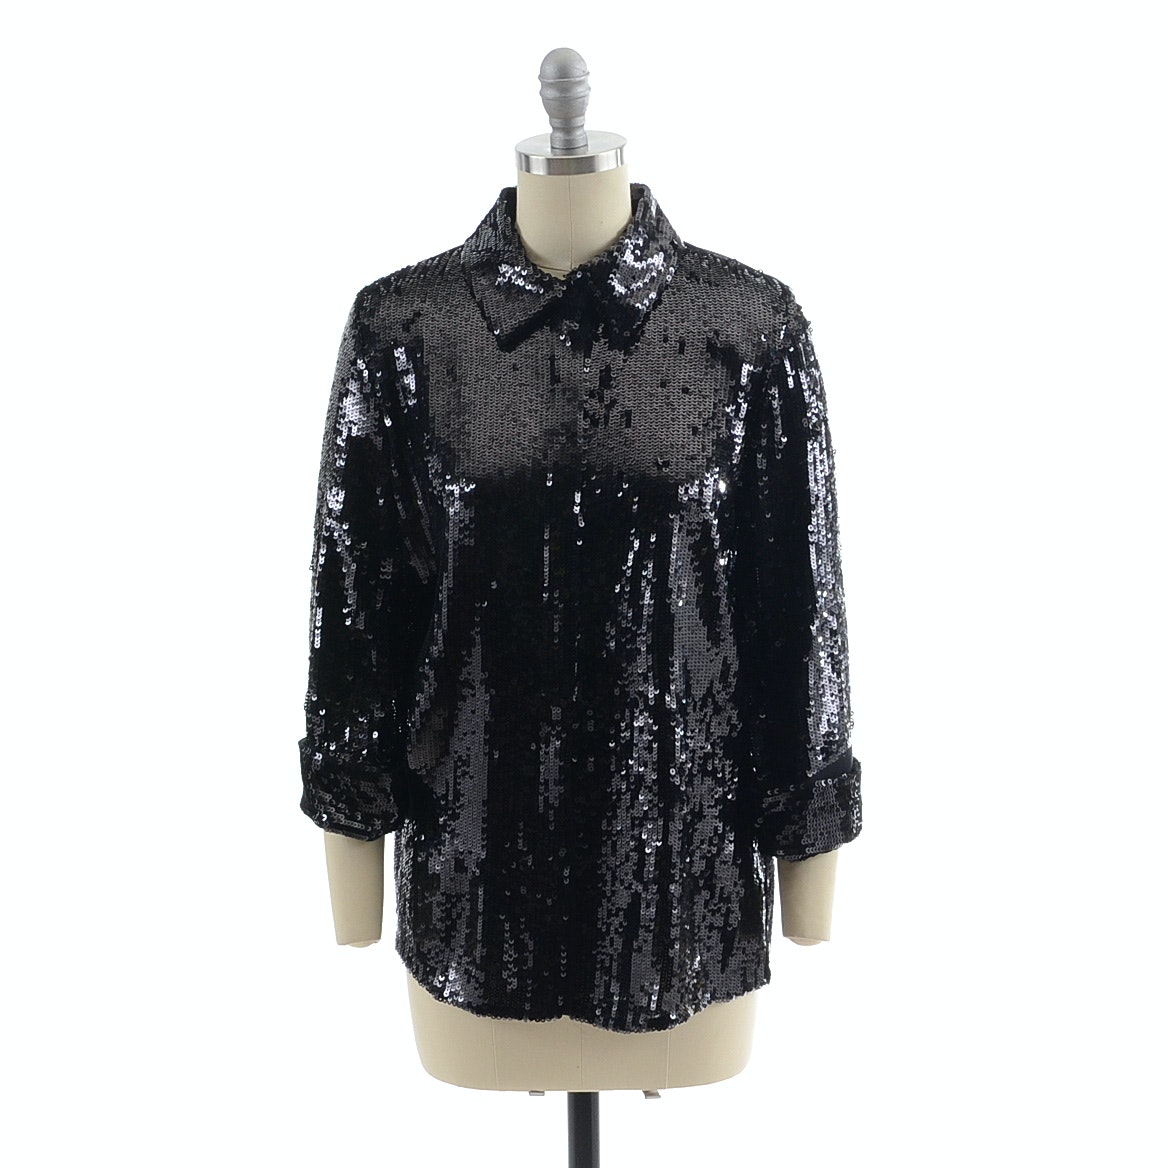 Alice + Olivia Black Sequined Button Front Blouse Accented with Black Silk Chiffon